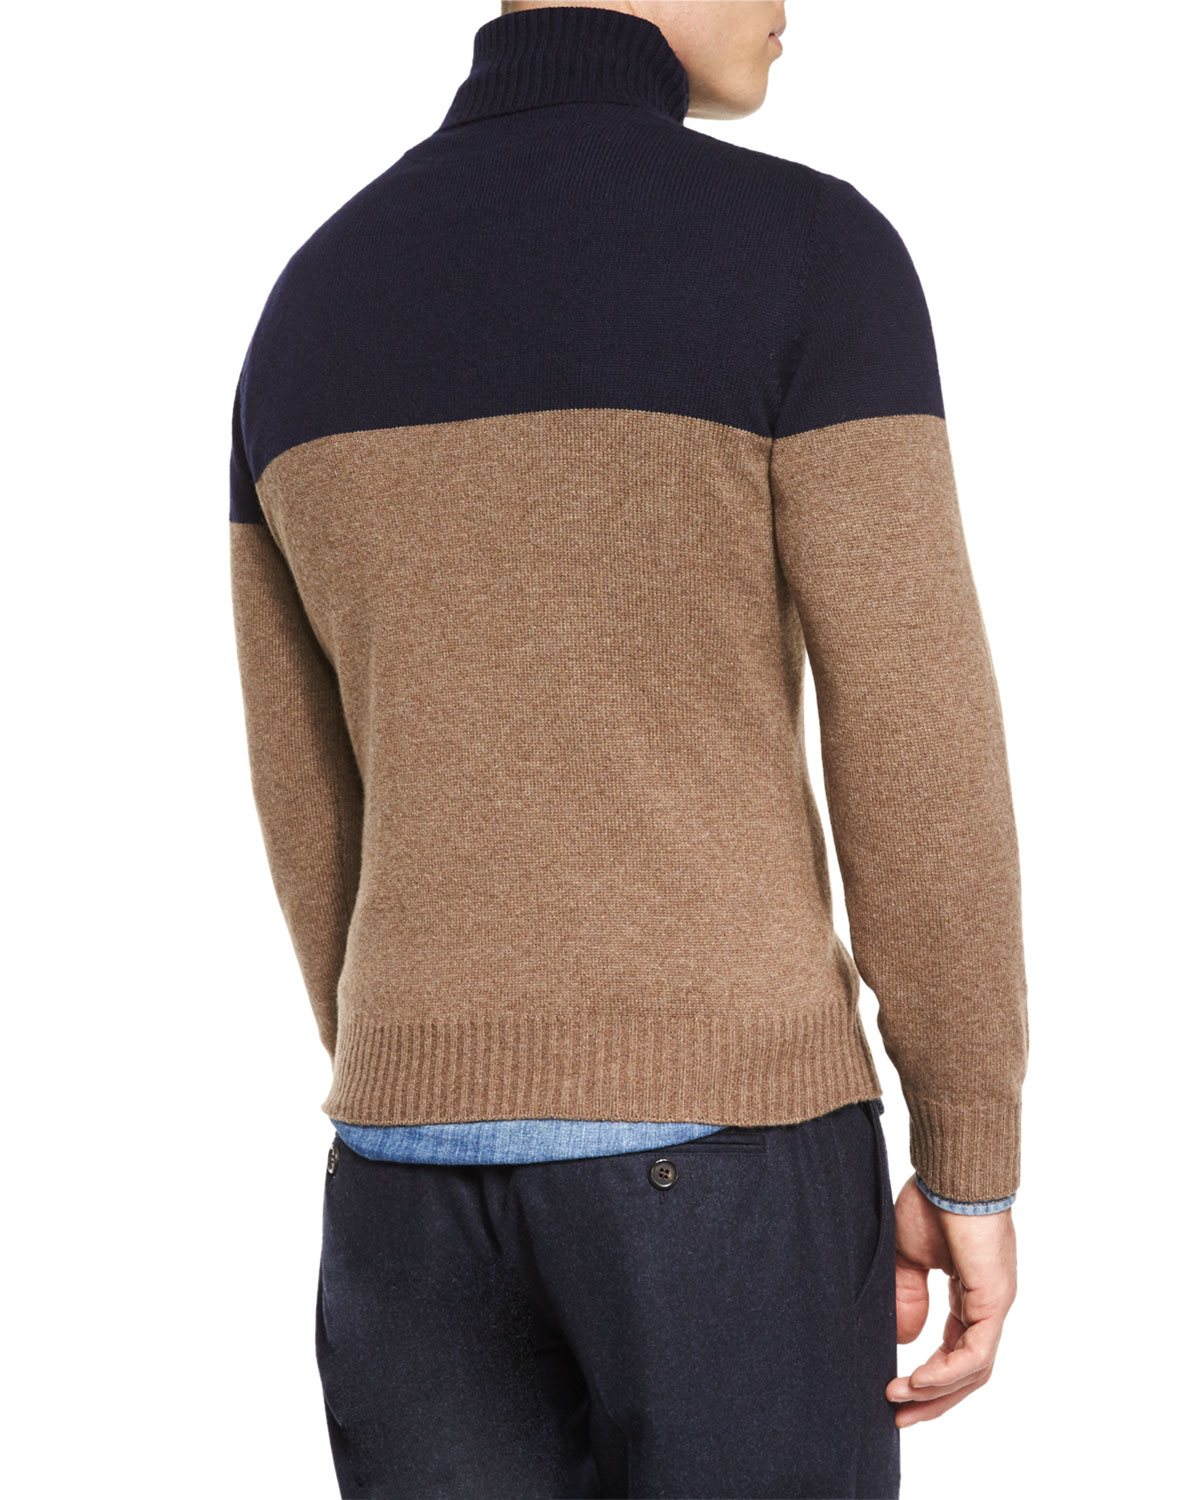 Shop for men's Cashmere Sweaters online at coolnup03t.gq Browse the latest Sweaters styles for men from Jos. A Bank. FREE shipping on orders over $